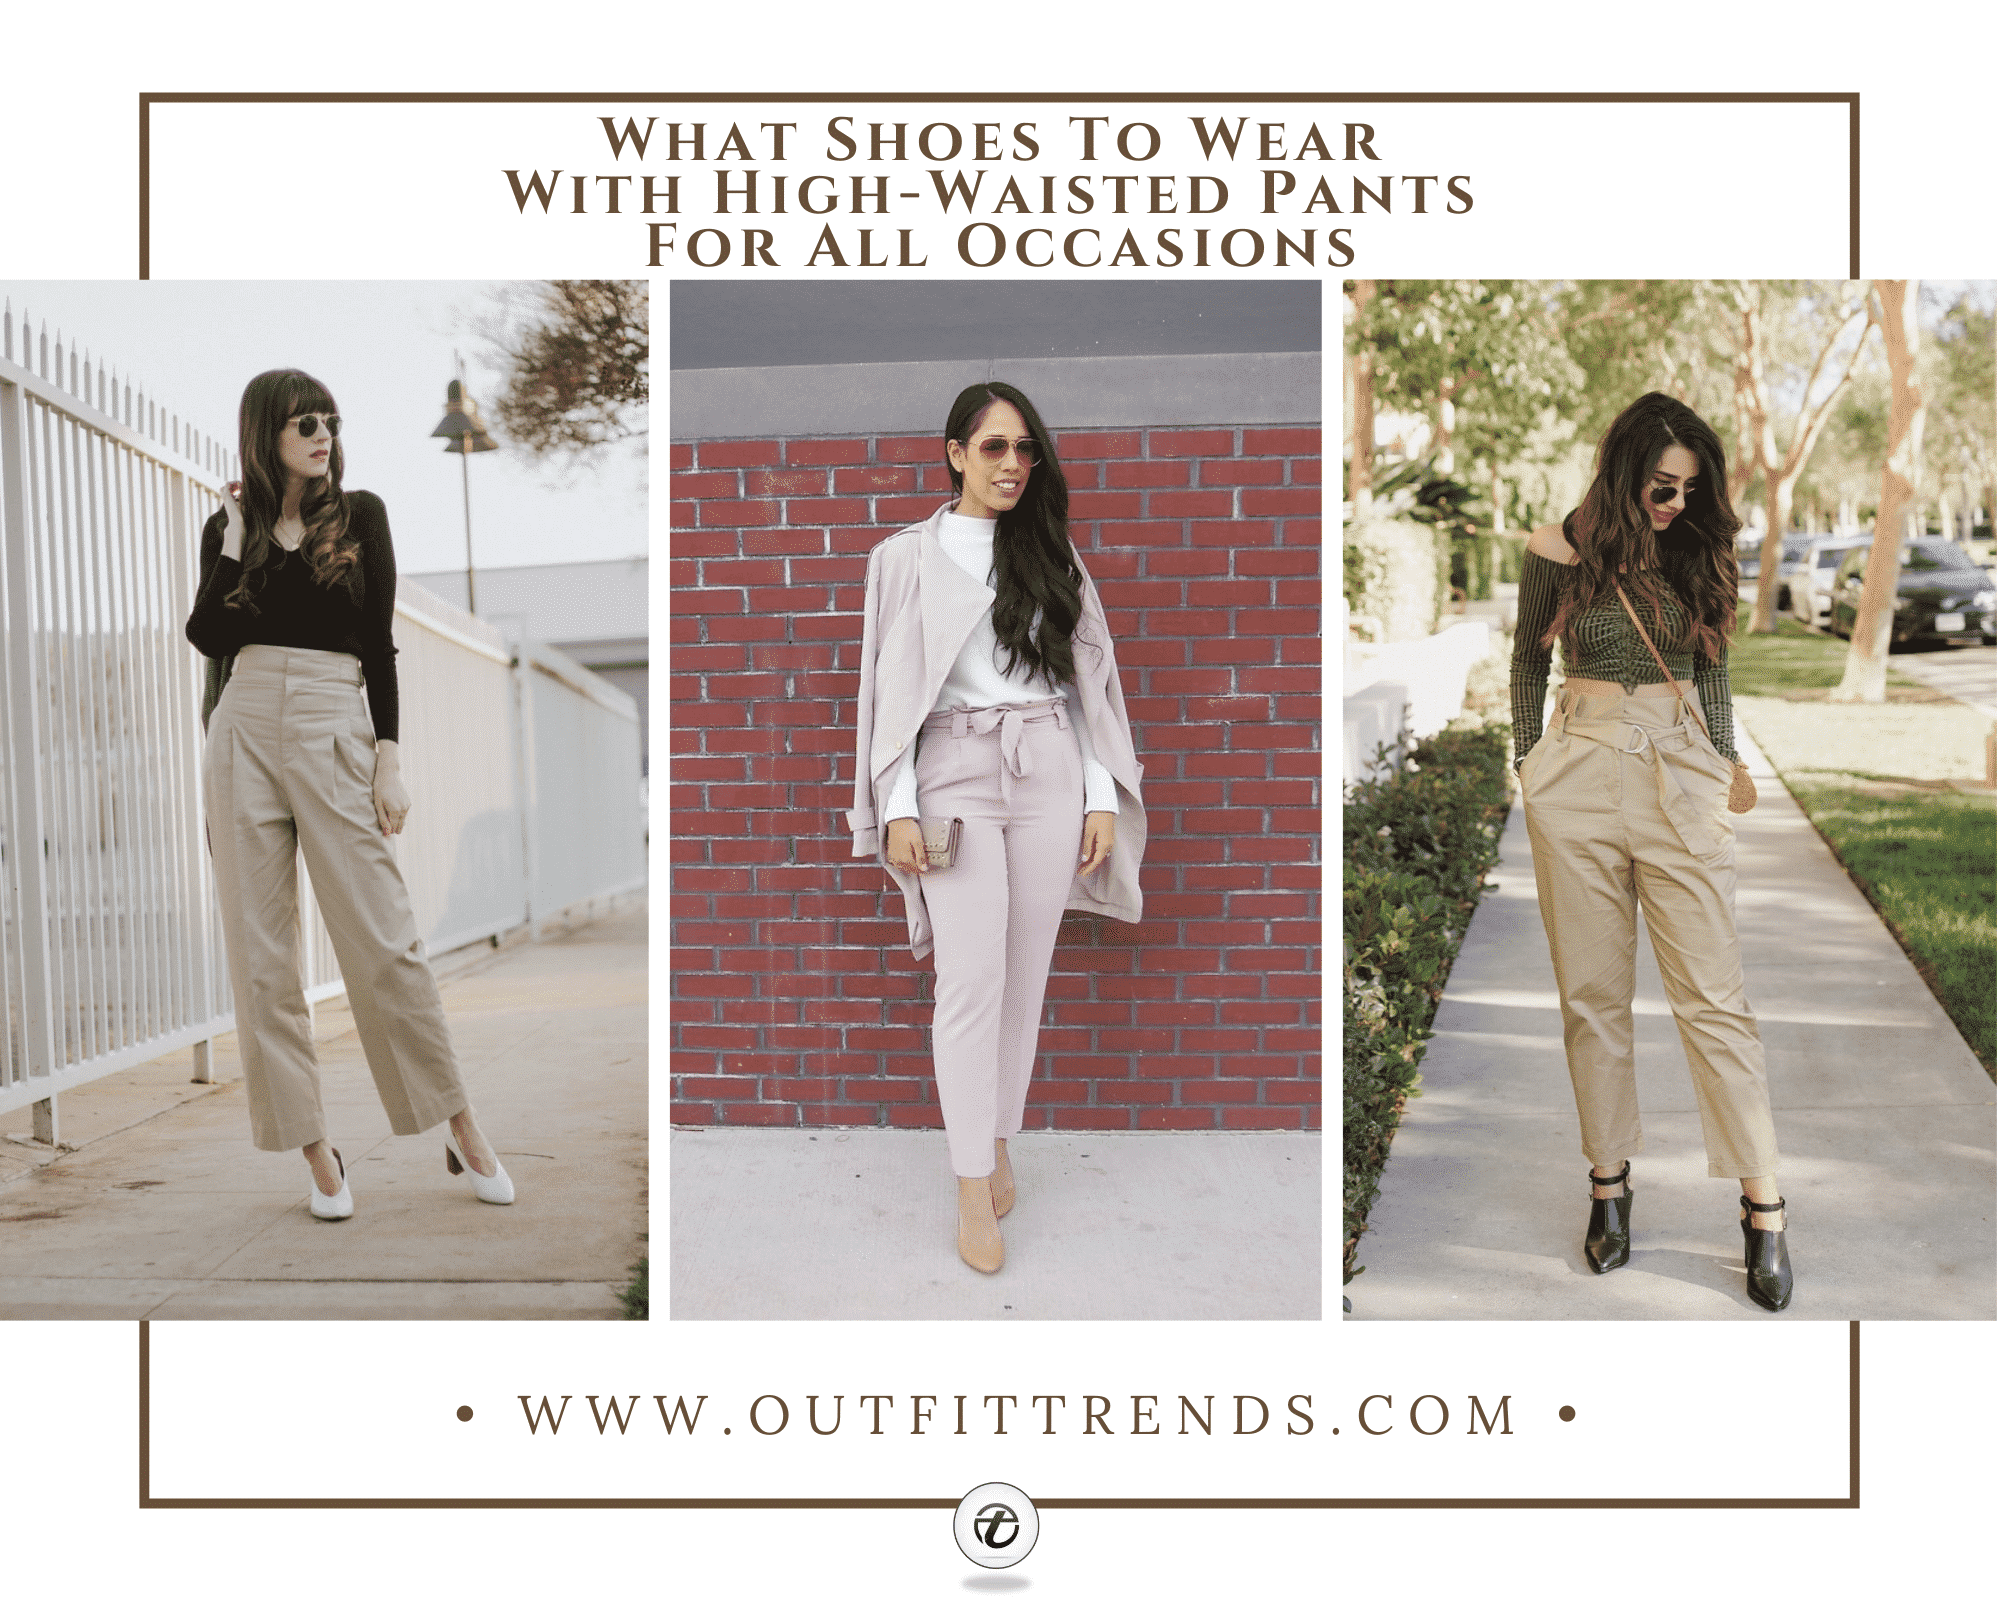 21 Best Women's Shoes To Wear With High Waisted Pants